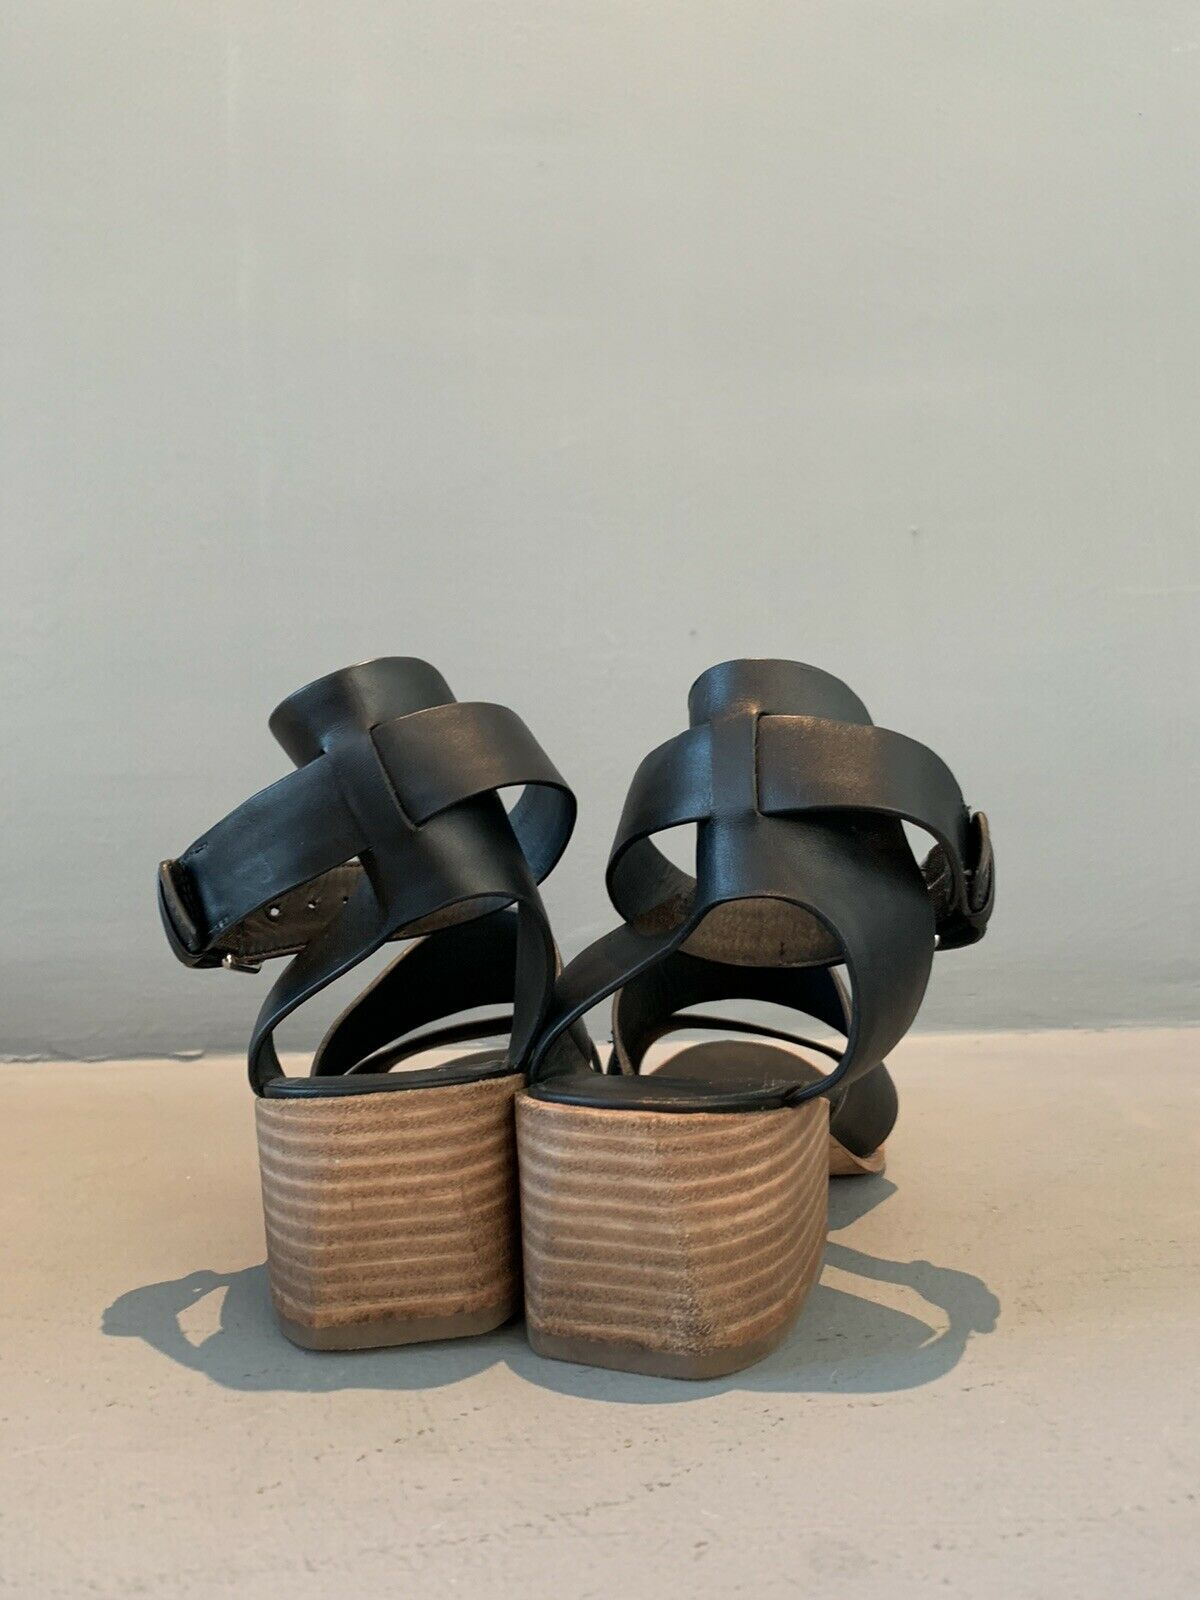 Vince Strappy Sandals - image 7